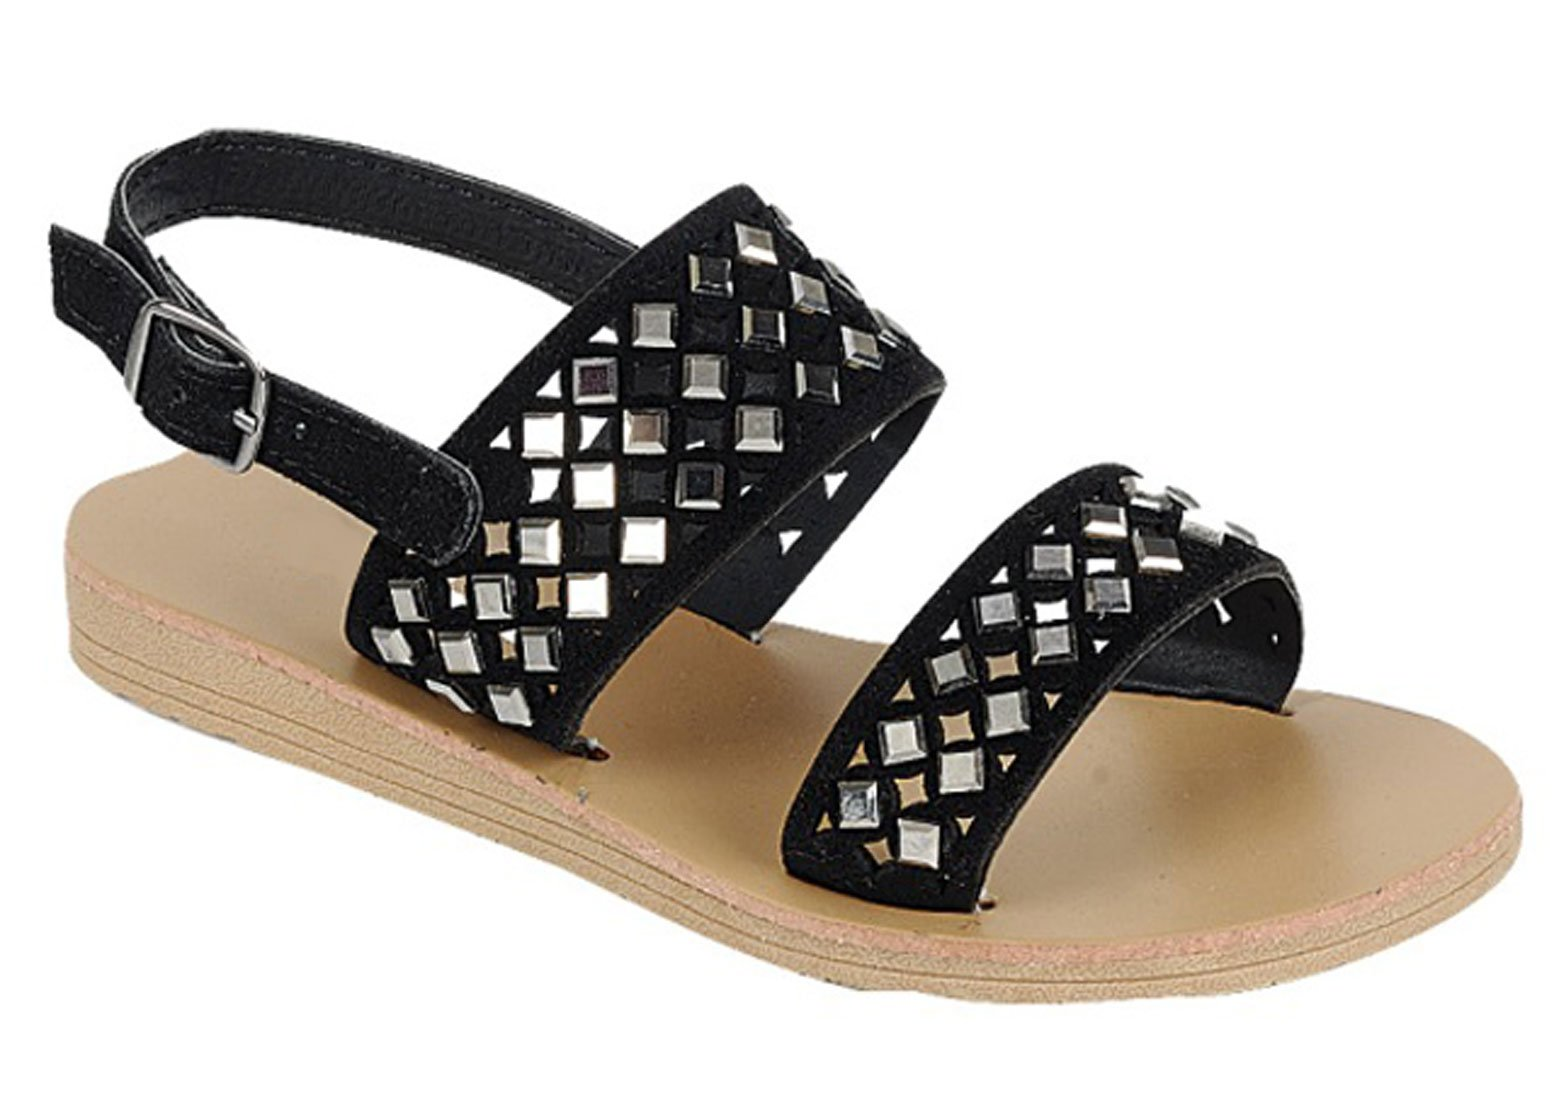 Clearance Sale Top Kali Black Strappy Flat Heel Summer Sandal Sparkle Comfortable Embellished Ankle Strap with Buckle Summer Fashion Prime Colorful Beach Slip On for Little Girl Kid (Size 11, Black)